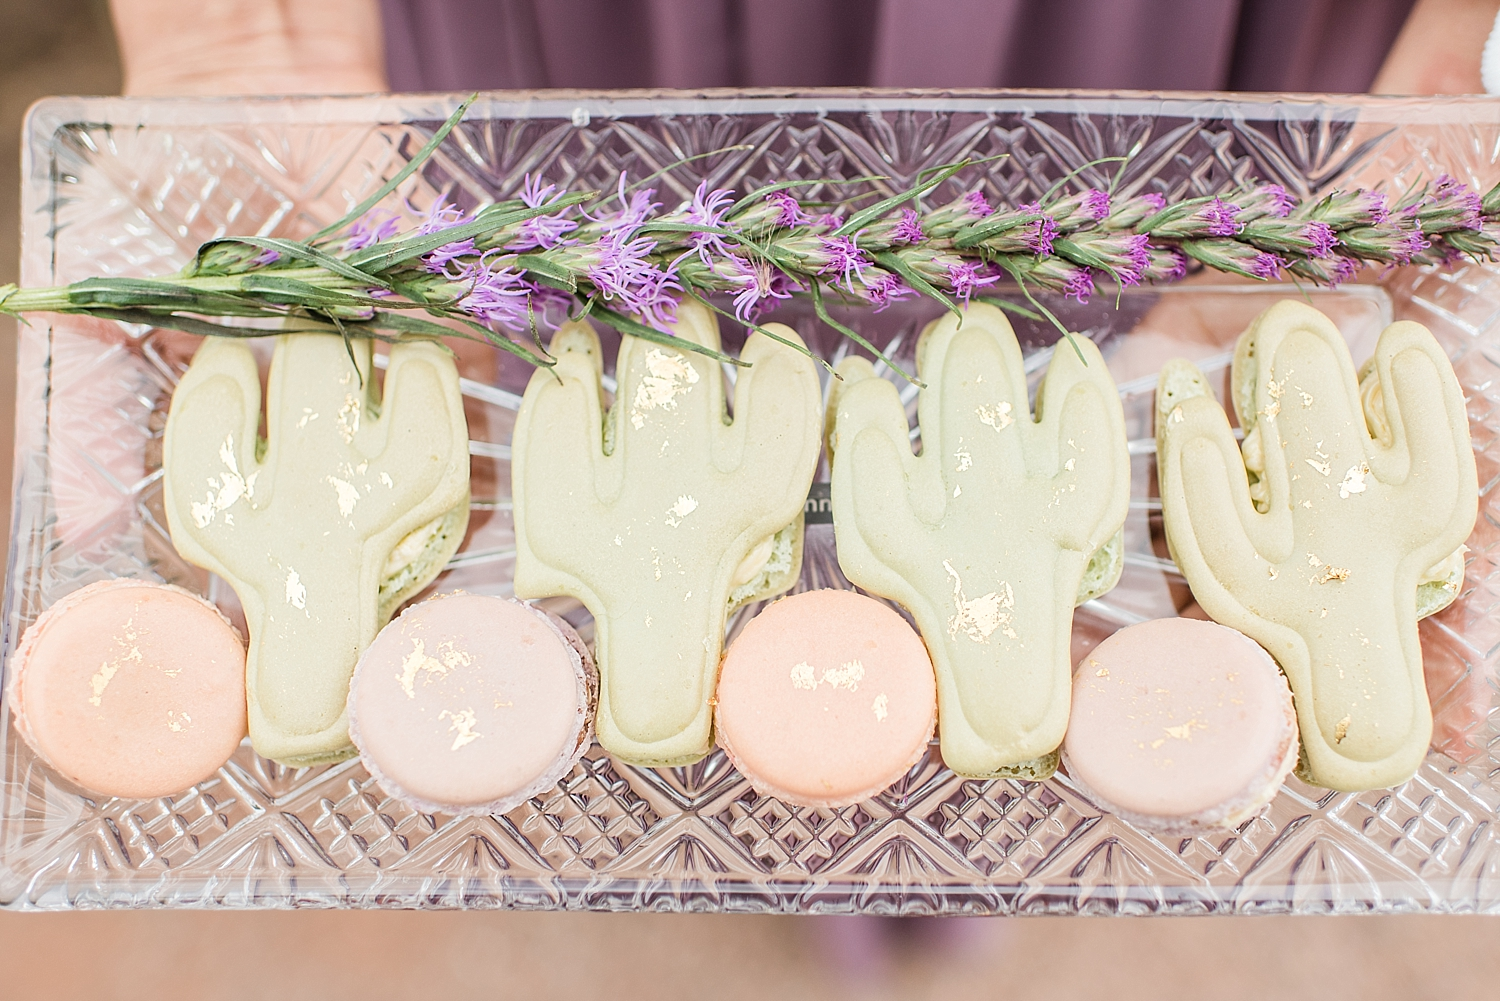 Lavender Inspired Bridal and Maid of Honor Session at Boyce Thompson Arboretum in Superior, Arizona. Photos taken by Wedding Photographer, Jade Min of Jade Min Photography, based out of Gilbert, Arizona. French macarons were provided by Decadent Macaron.